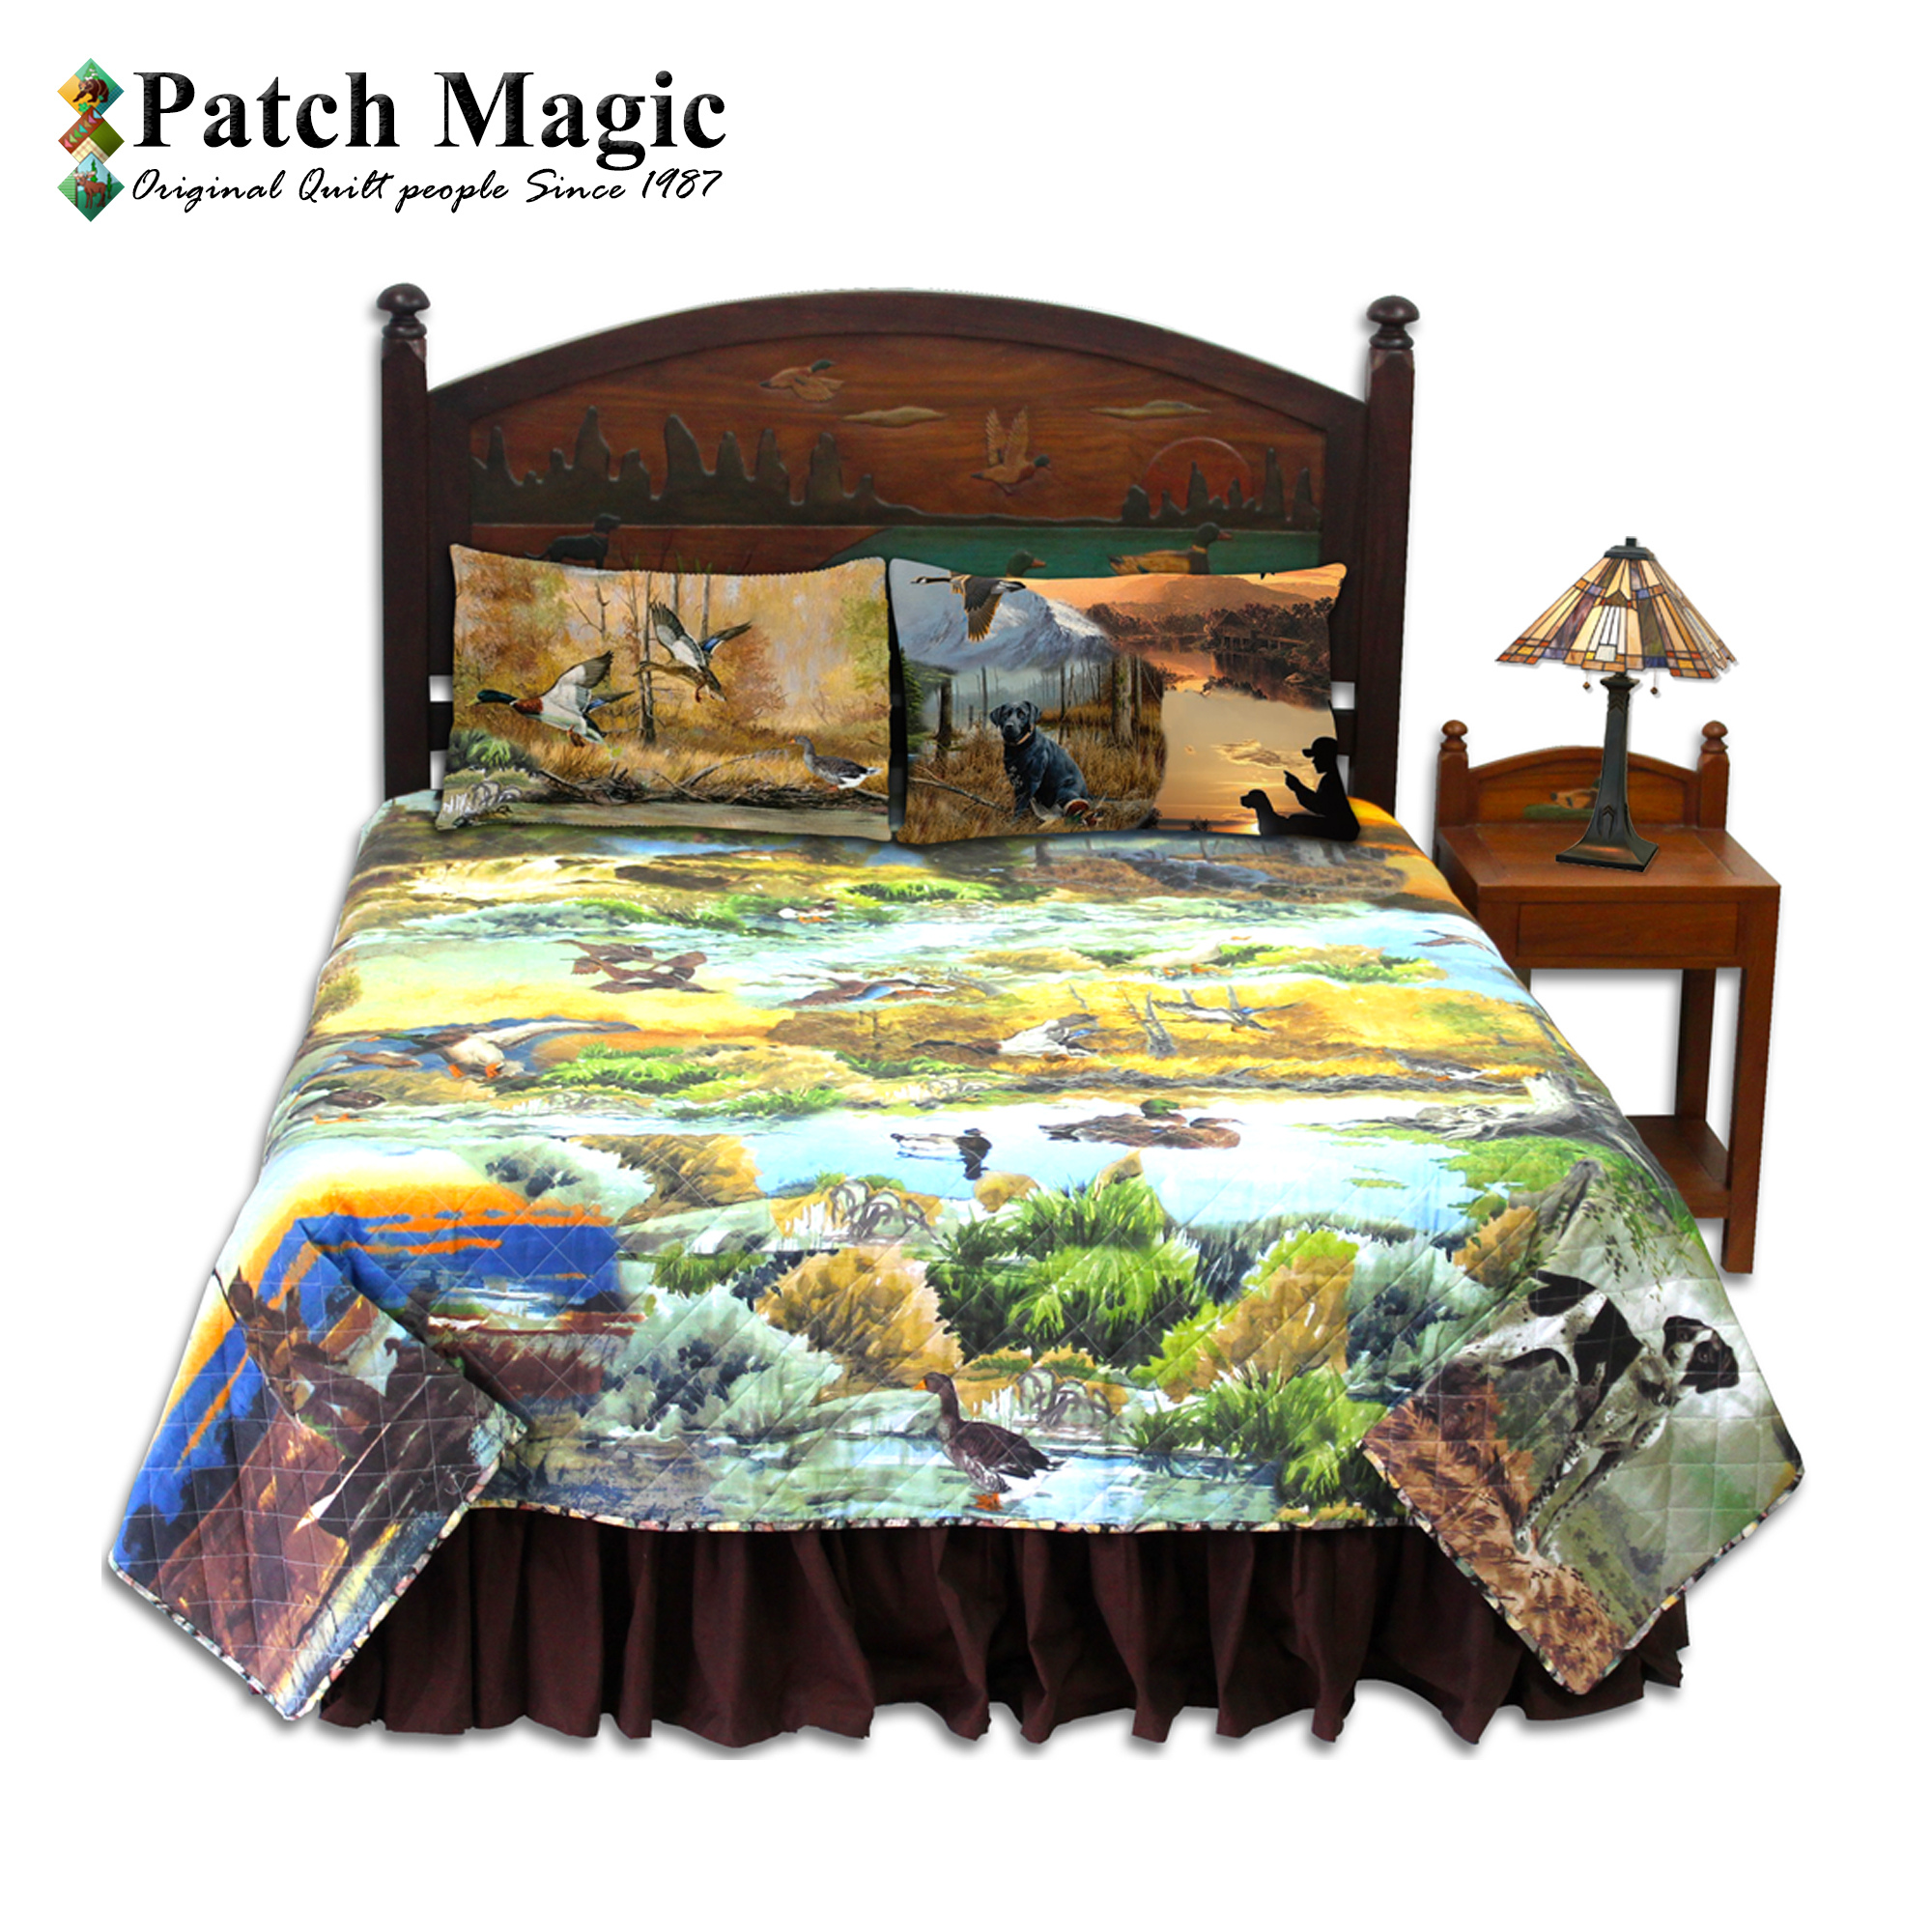 Ducks Galore Luxury King Bed in a Bag Set of 5 Pieces